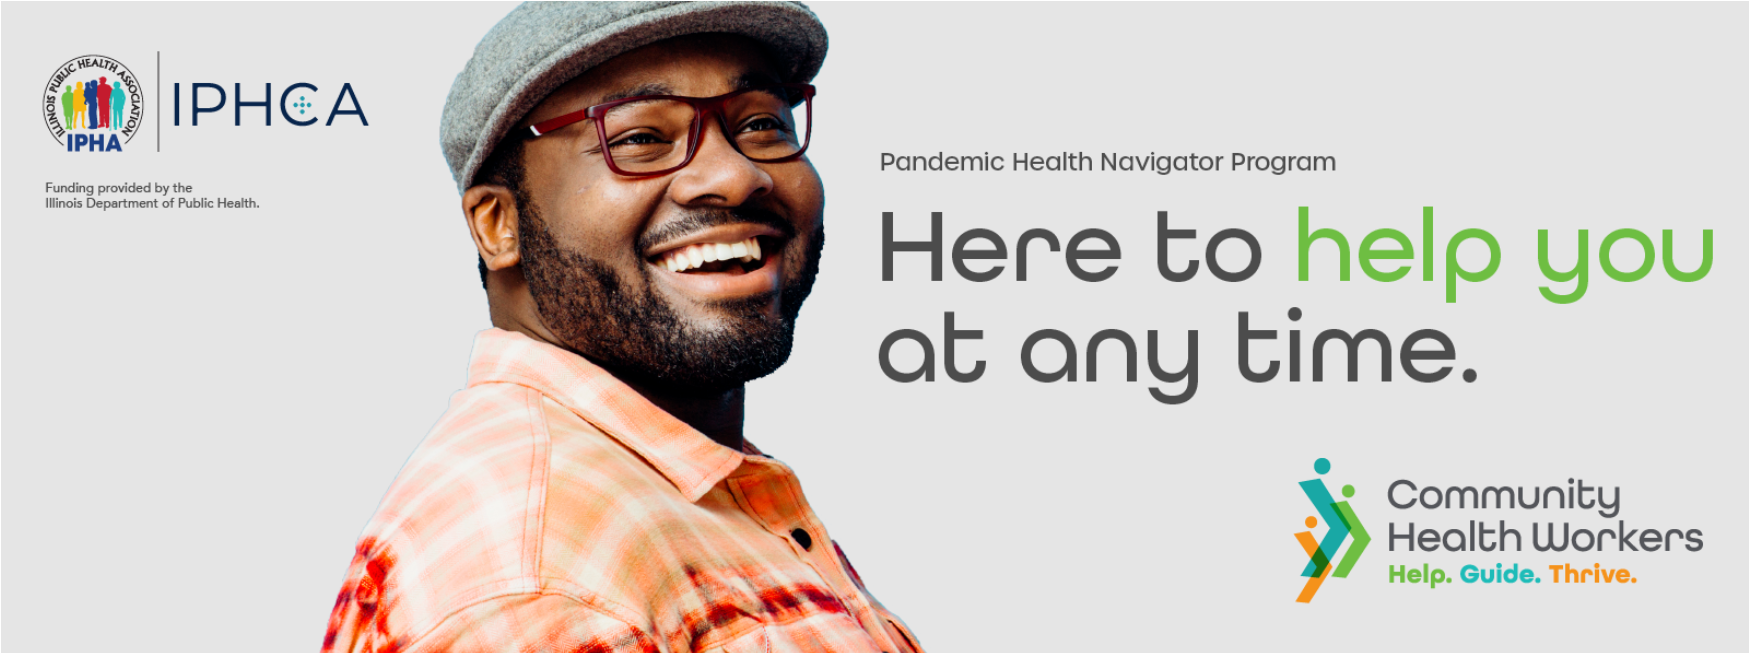 Pritzker Administration Launches Pandemic Health Navigator Program to Further Expand COVID-19 Resources and Vaccine Accessibility